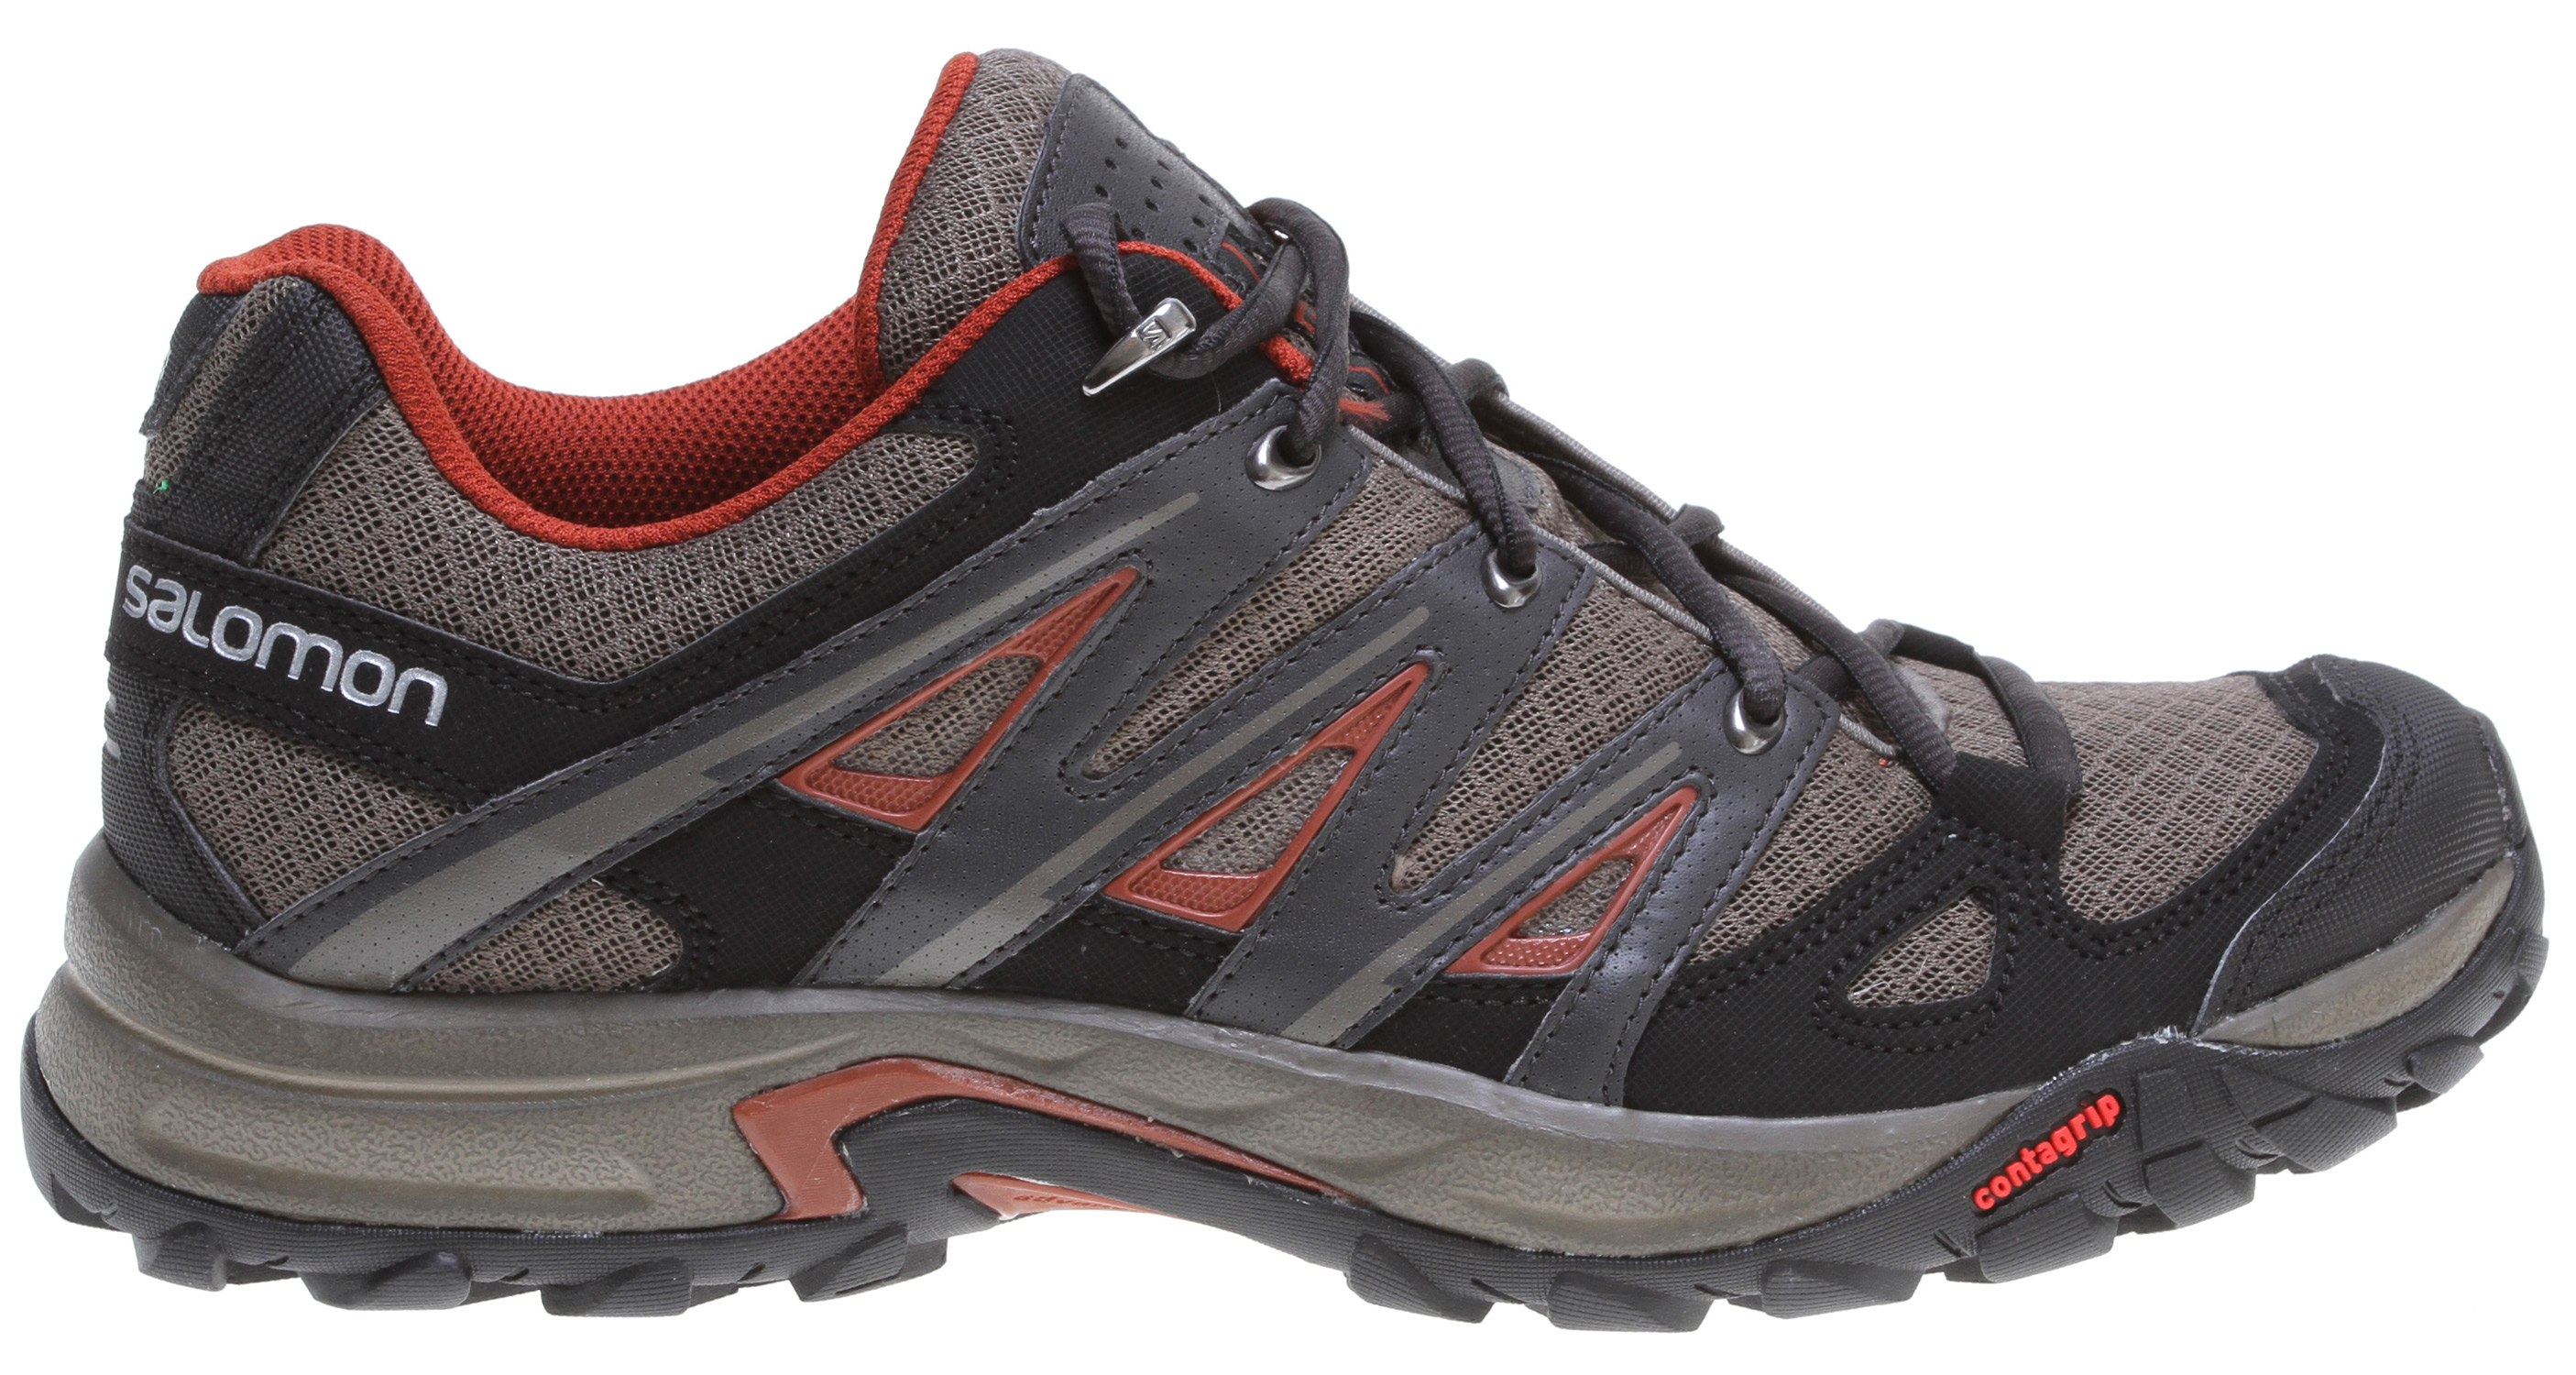 Camp and Hike Very light and amazingly comfortable, the Eskape Aero provides the cushioning, breathability, and protection you need for hiking, exploring, and everyday adventures.Key Features of the Salomon Eskape Aero Hiking Shoes: Weight: 375G / 13.2 oz (size 9) Heel foam Breathable open mesh Textile Protective synthetic toe cap Mud guard Protective heel cap Sensifit Endofit Outsole: Non marking Contagrip Chassis: Advance Chassis Sock Liner: Die cut EVA Midsole: Injected EVA - $100.00